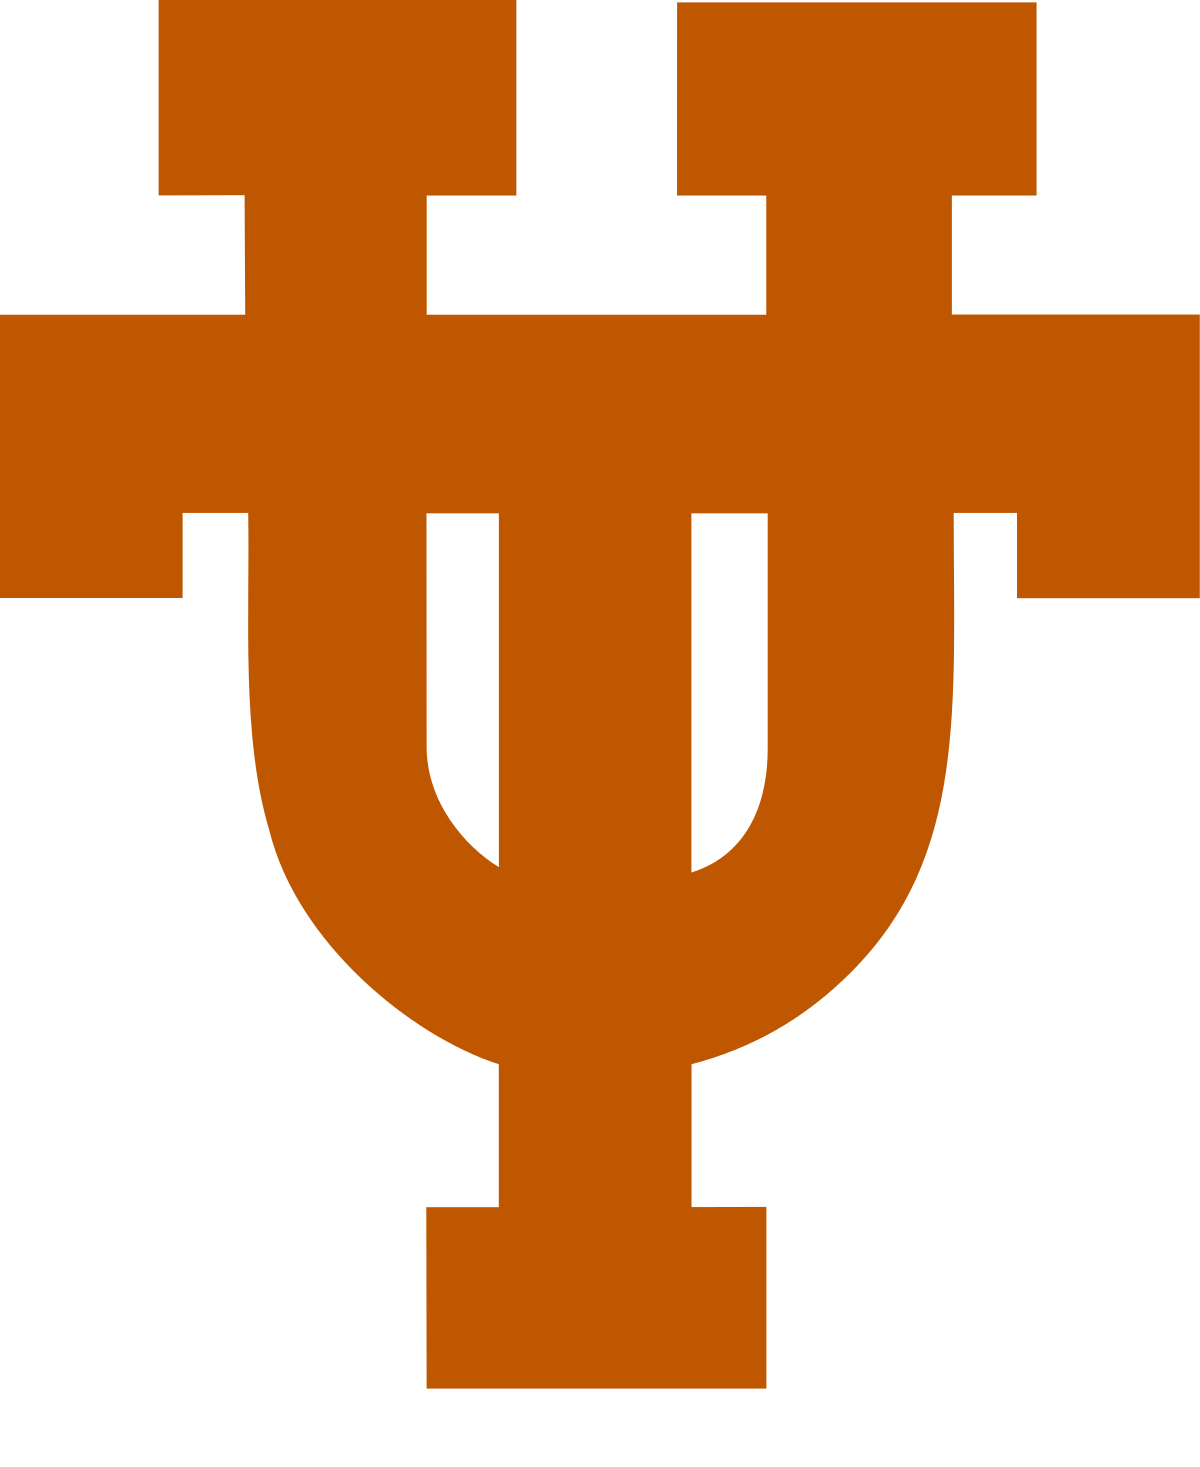 longhorn clipart orange #125405064